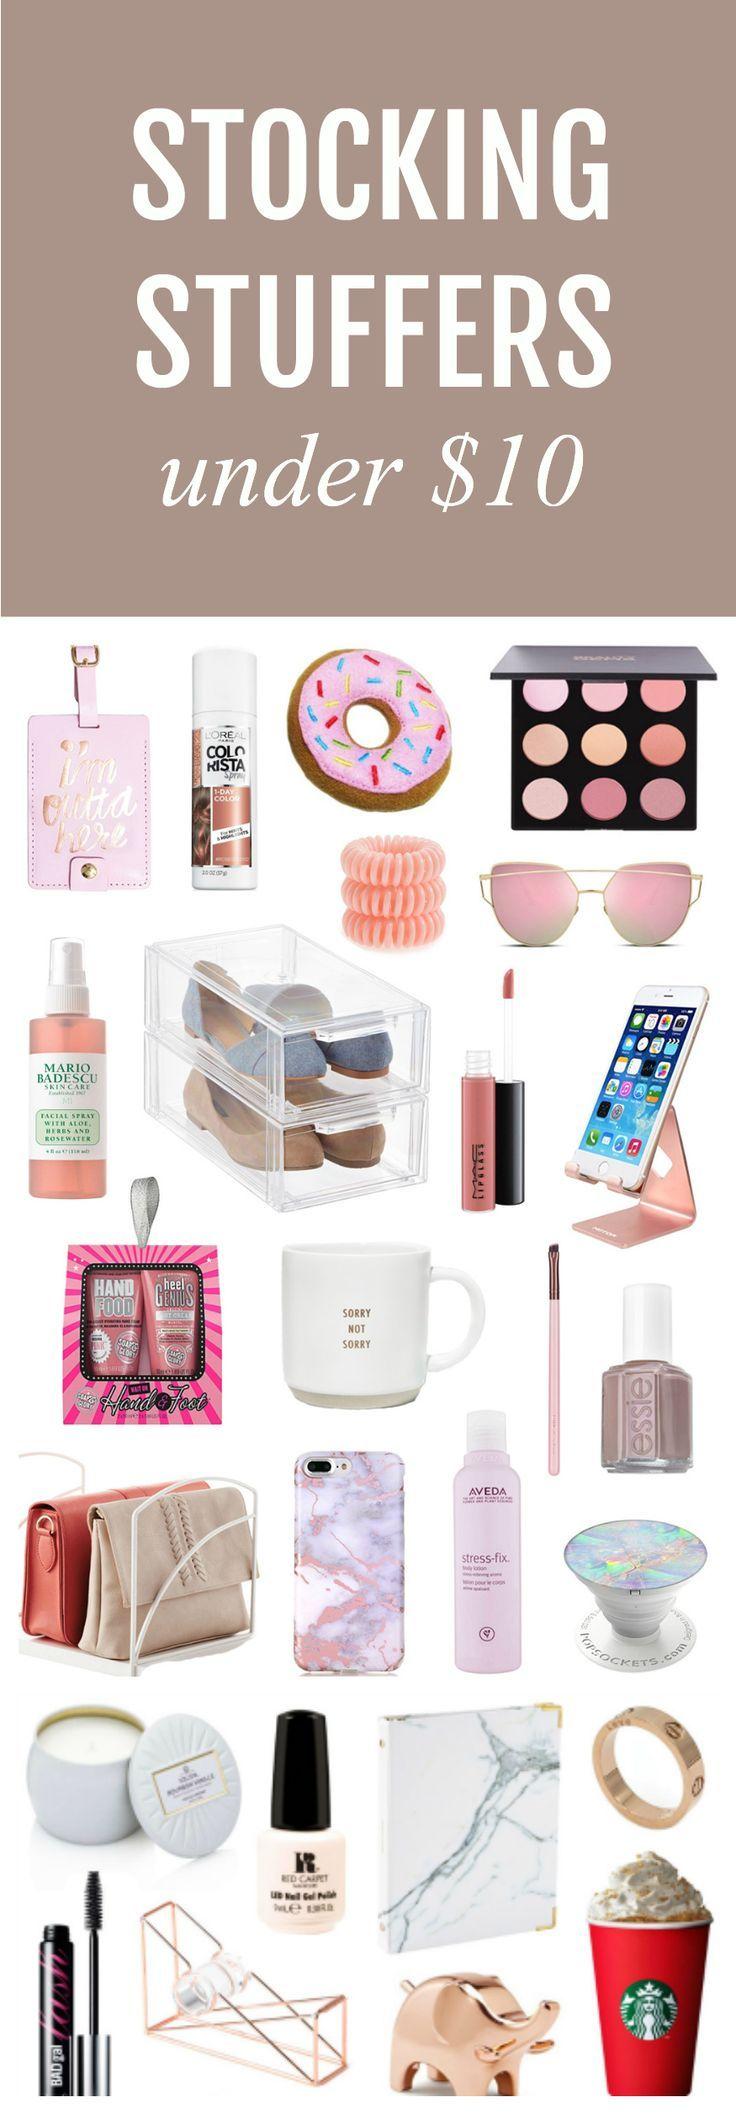 Inexpensive Stocking Stuffer Gifts for Women | Gifts For Mom ...